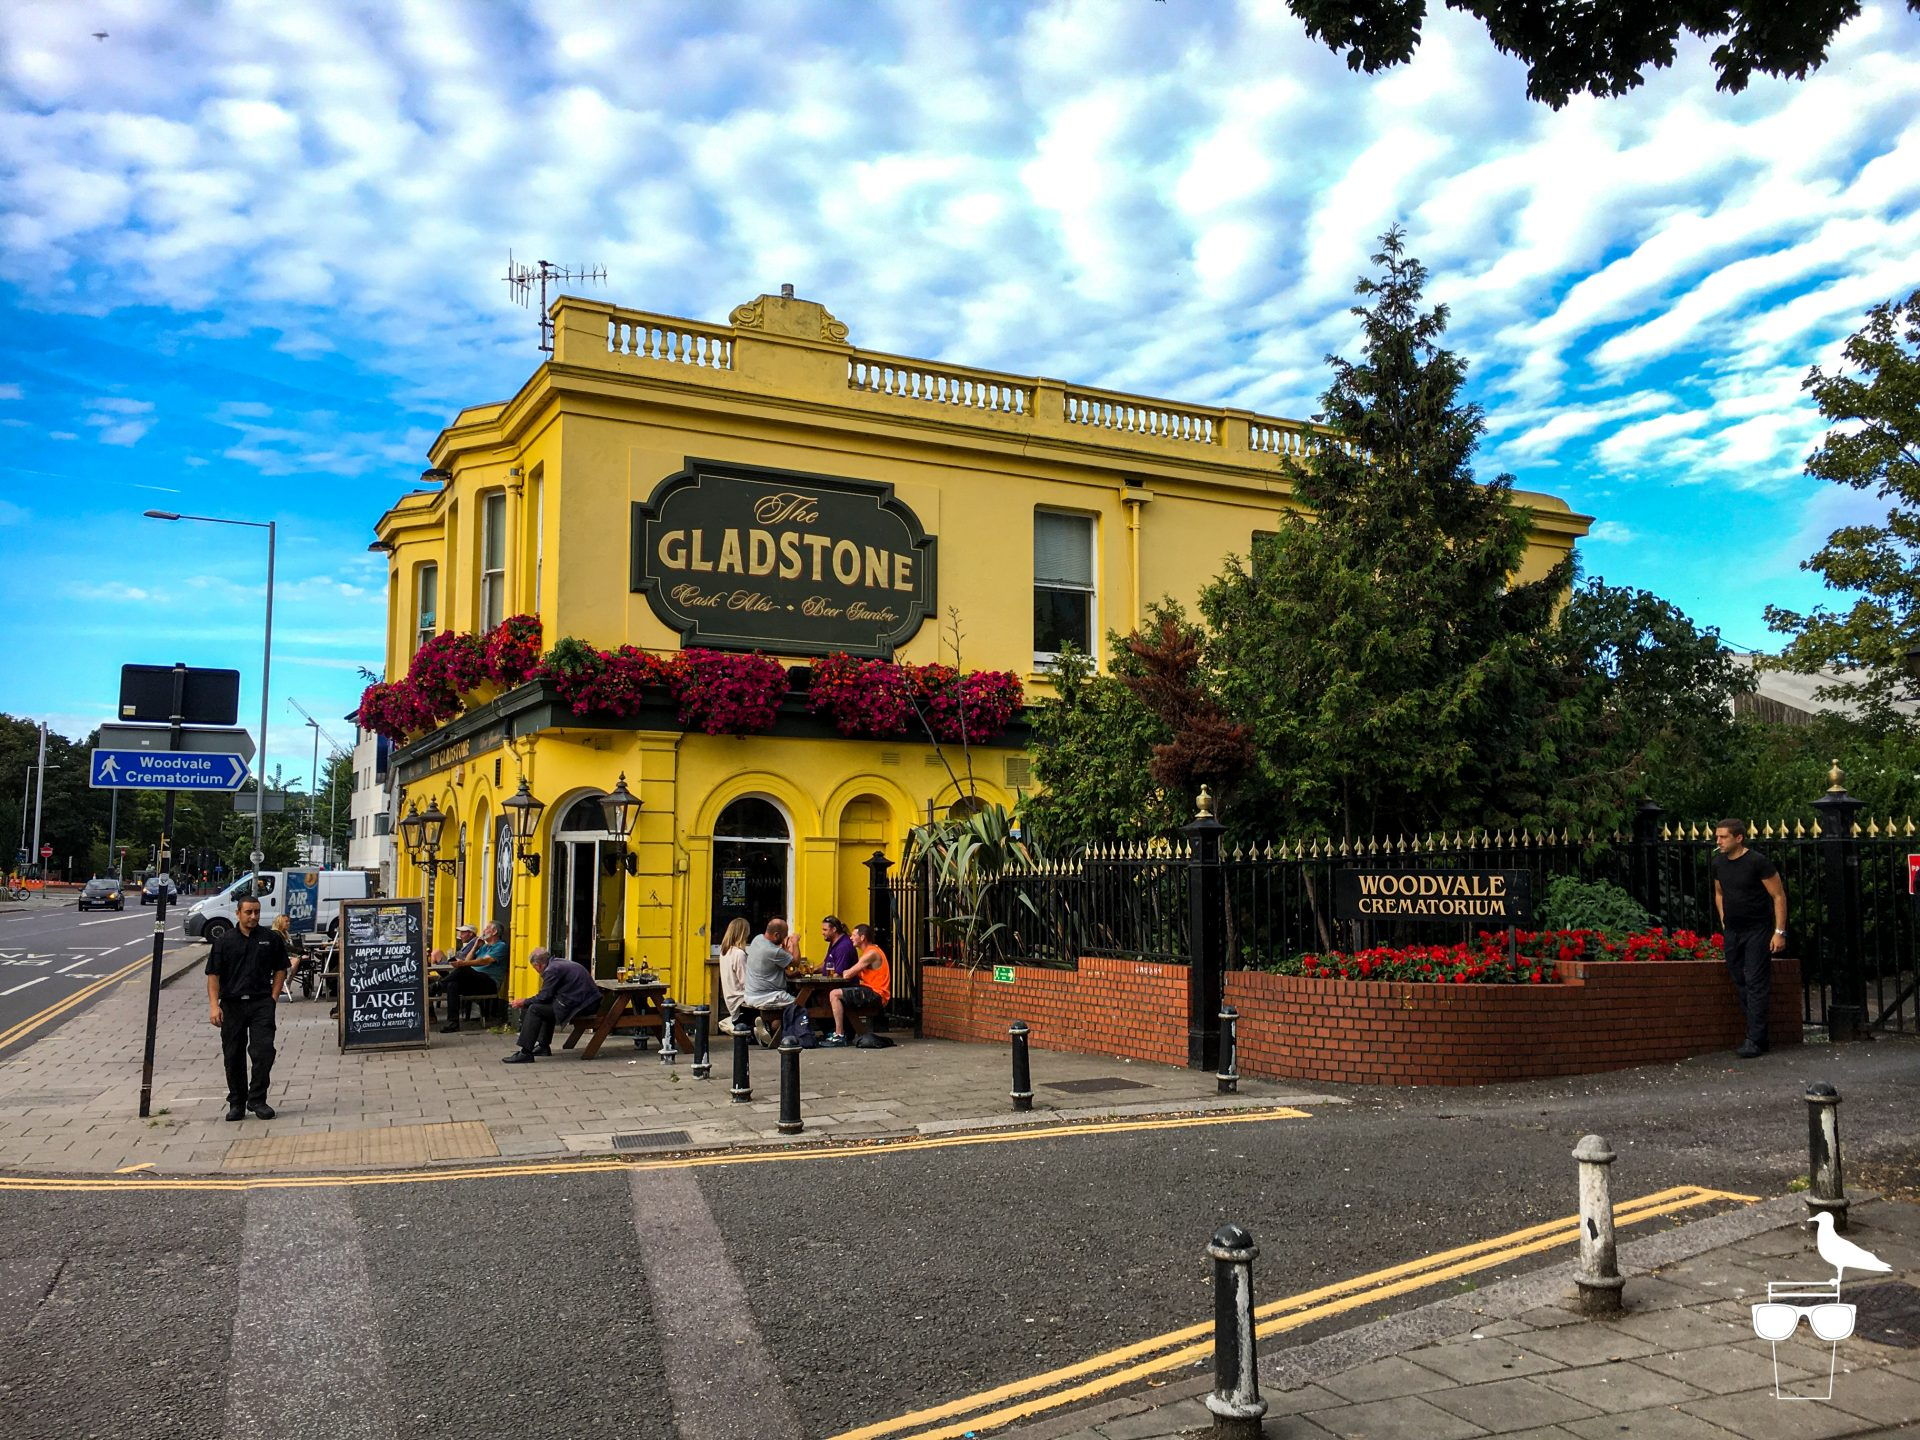 The Gladstone pub London Road Brighton outside view with blue sky